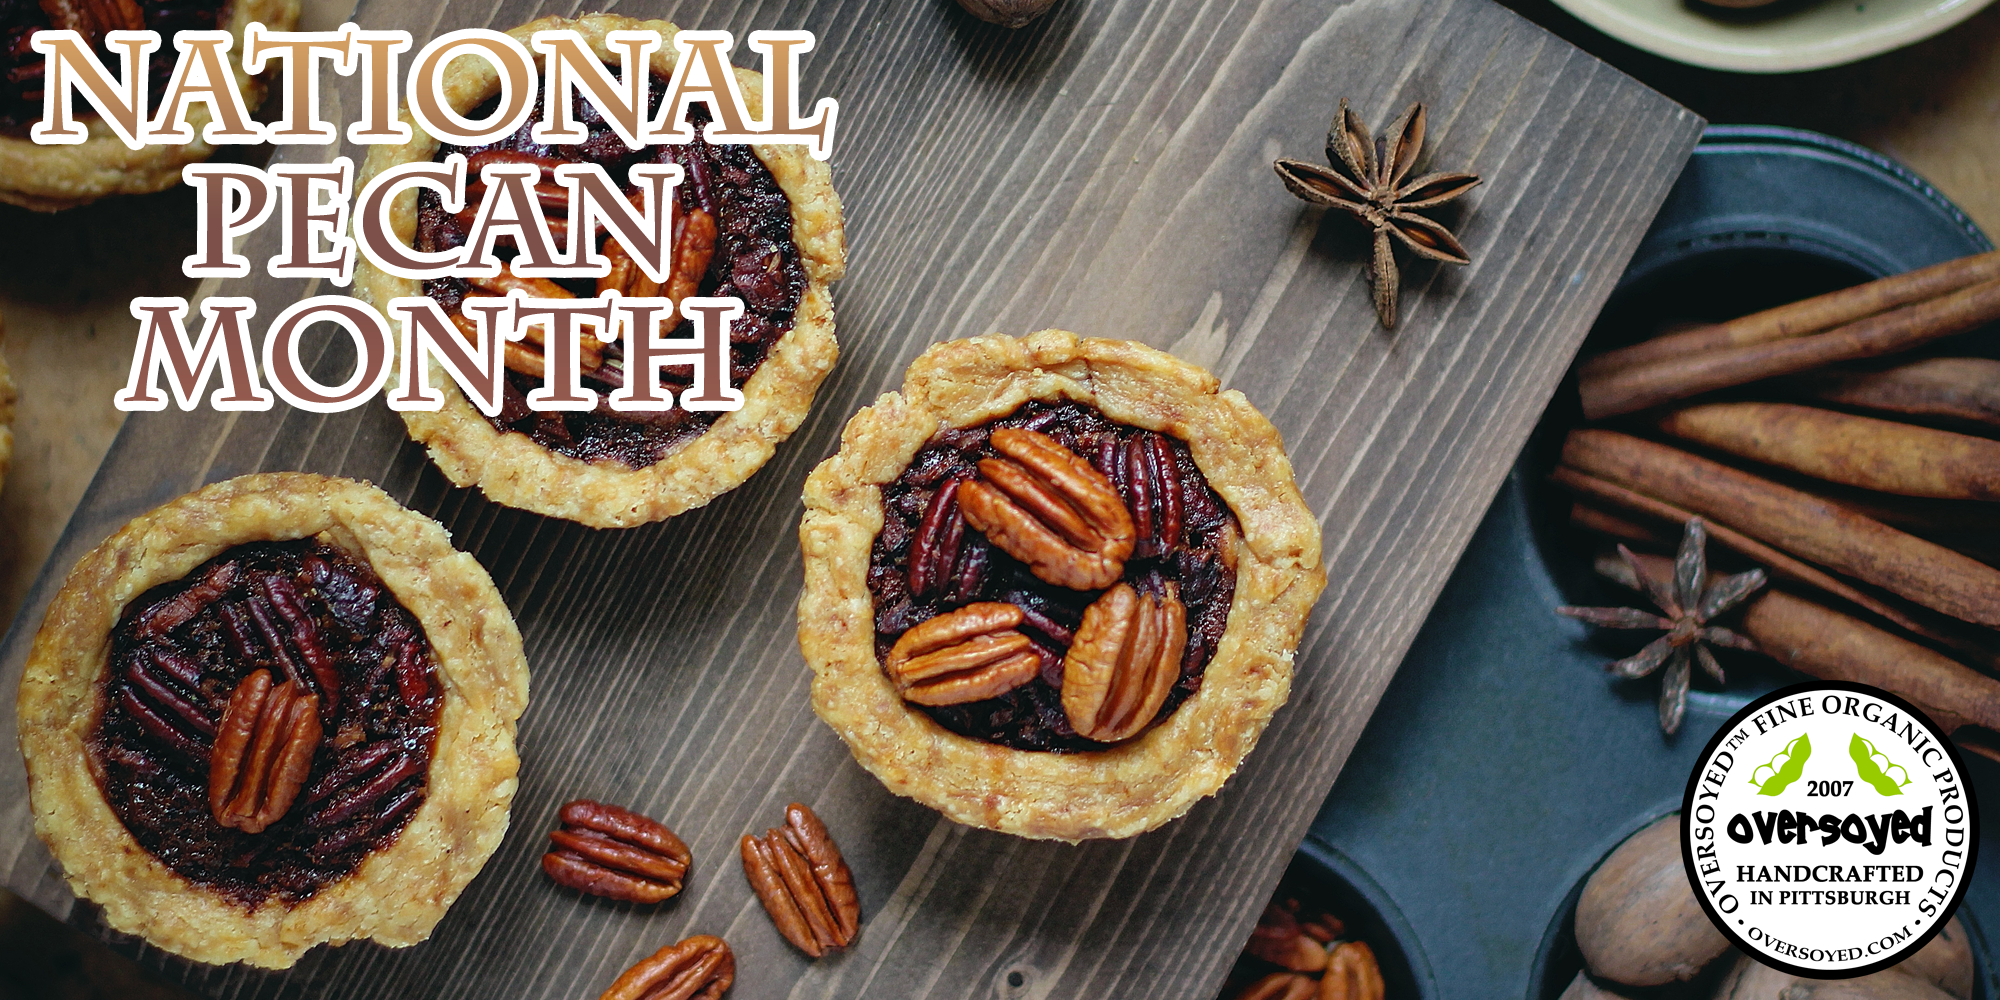 OverSoyed Fine Organic Products - National Pecan Month Collection